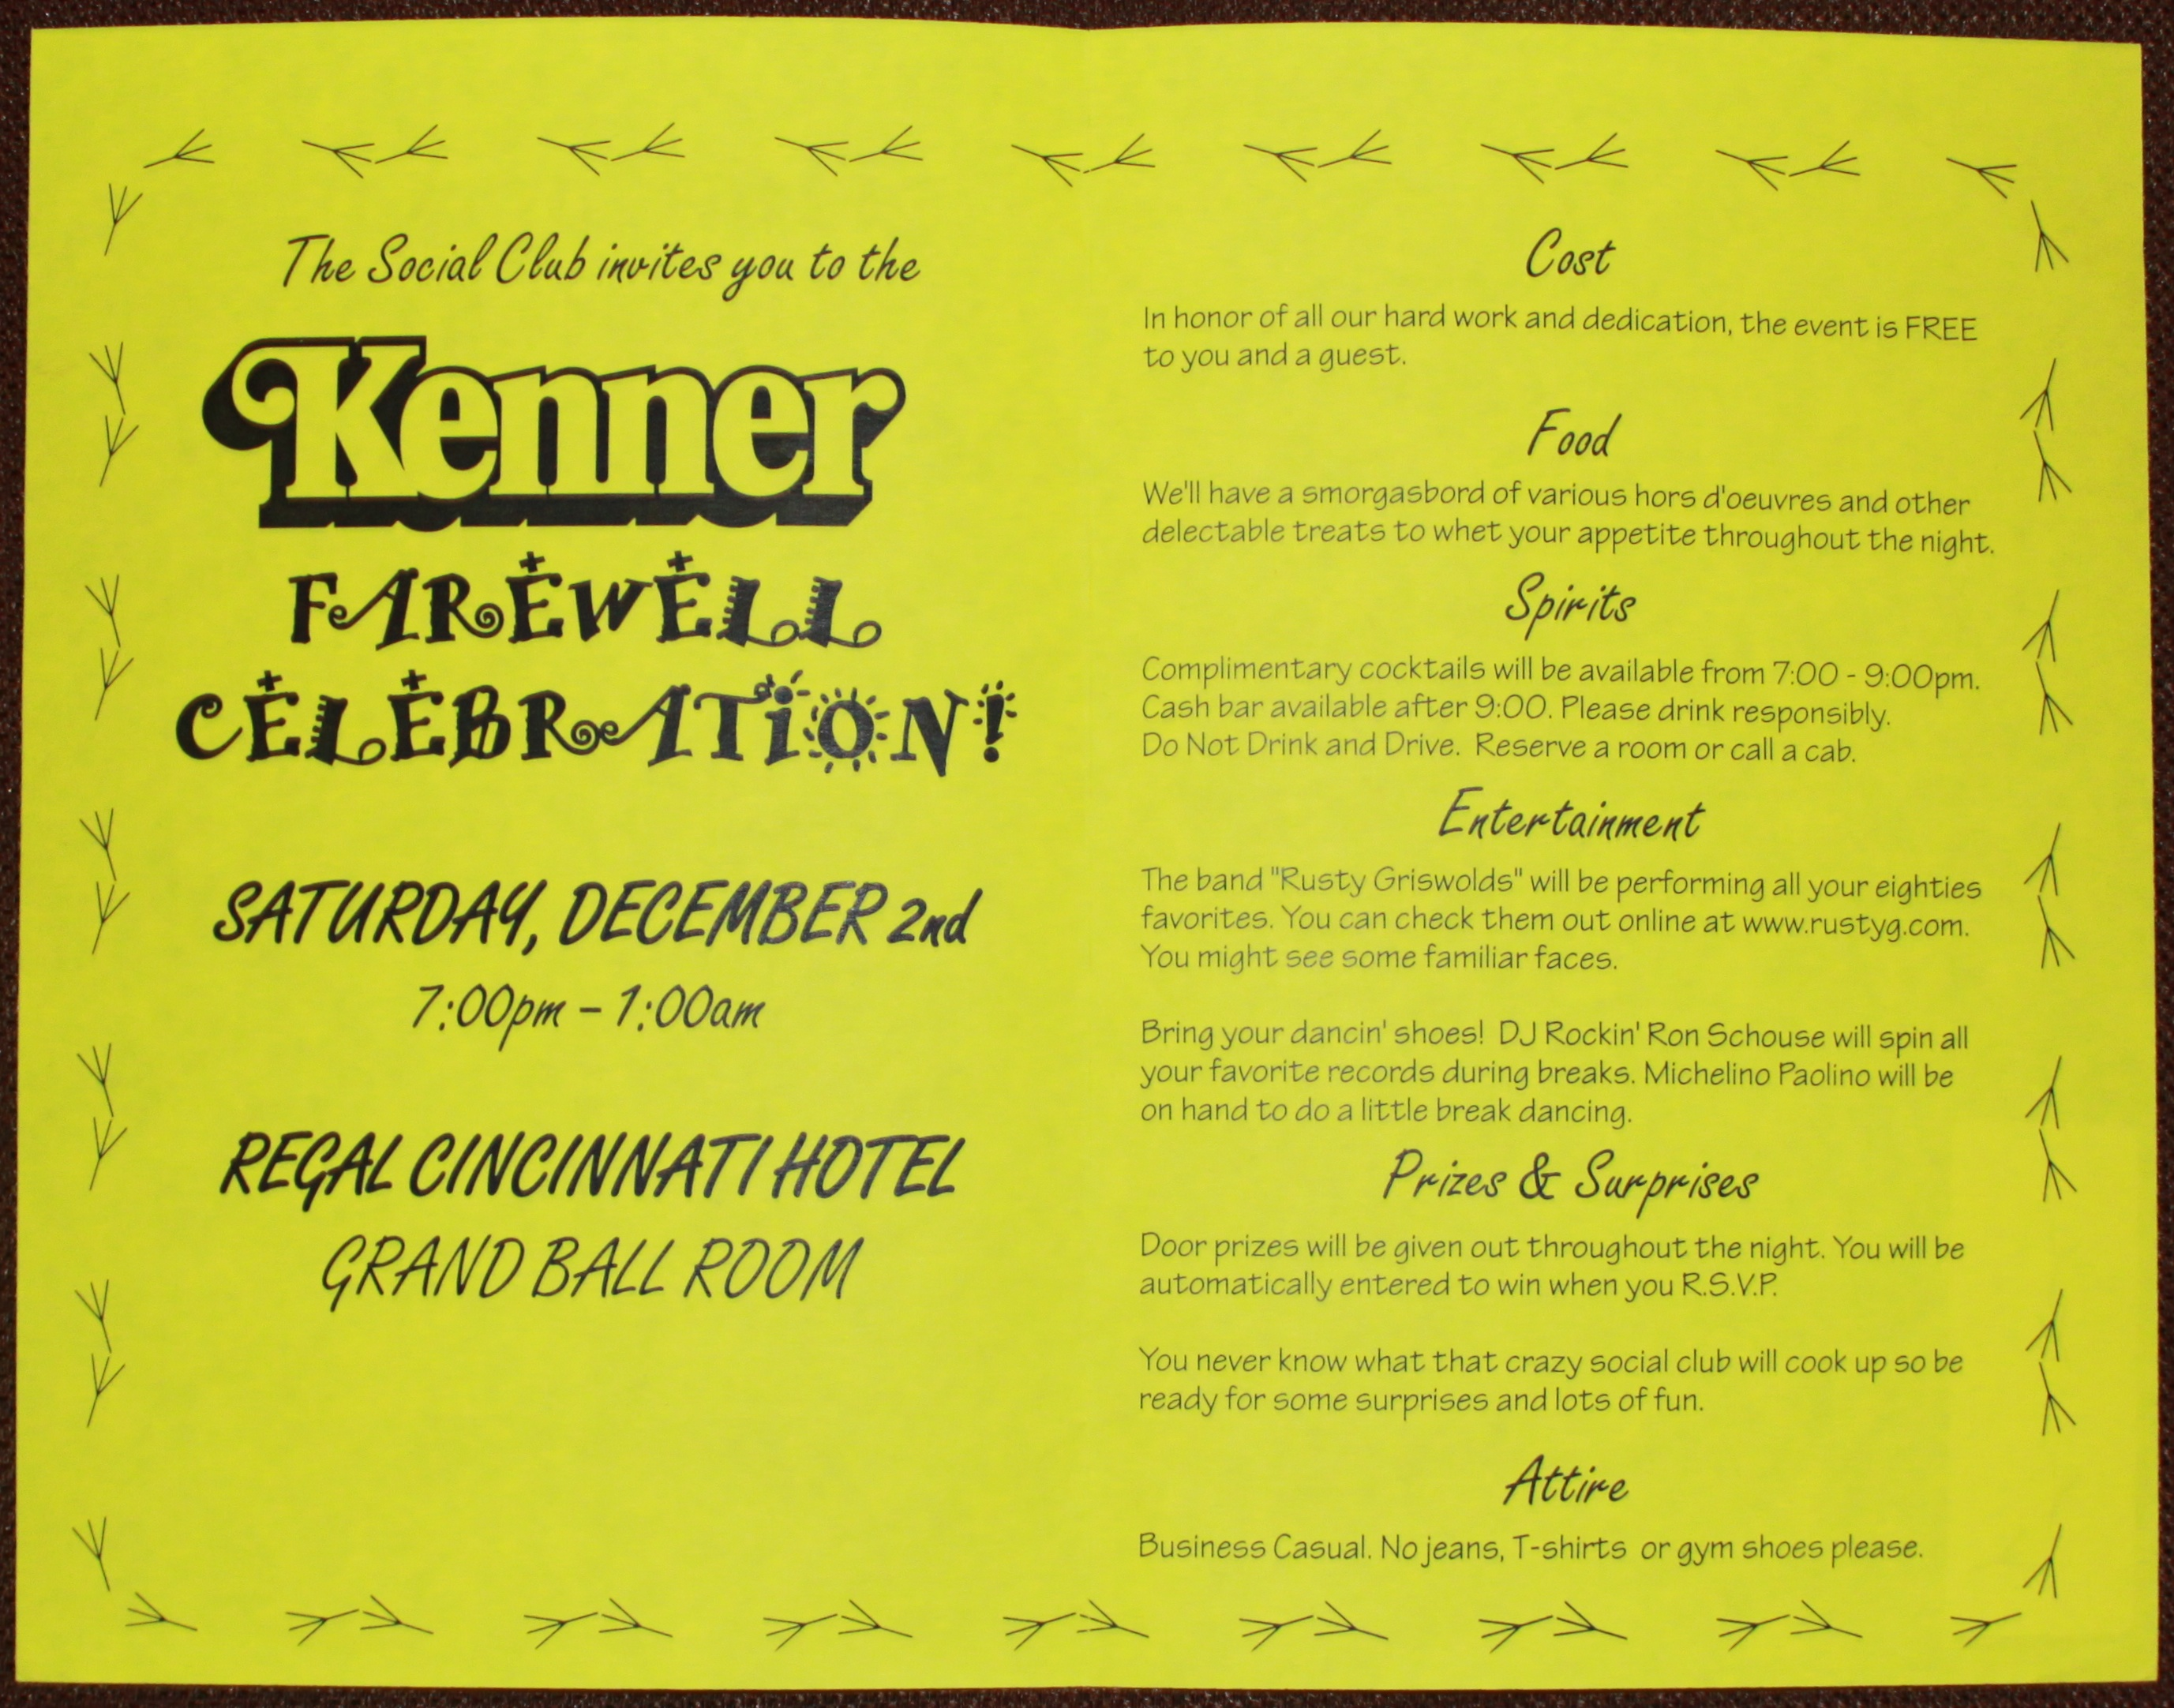 Kenner Farewell Party Invitation – Farewell Party Invitation Letter